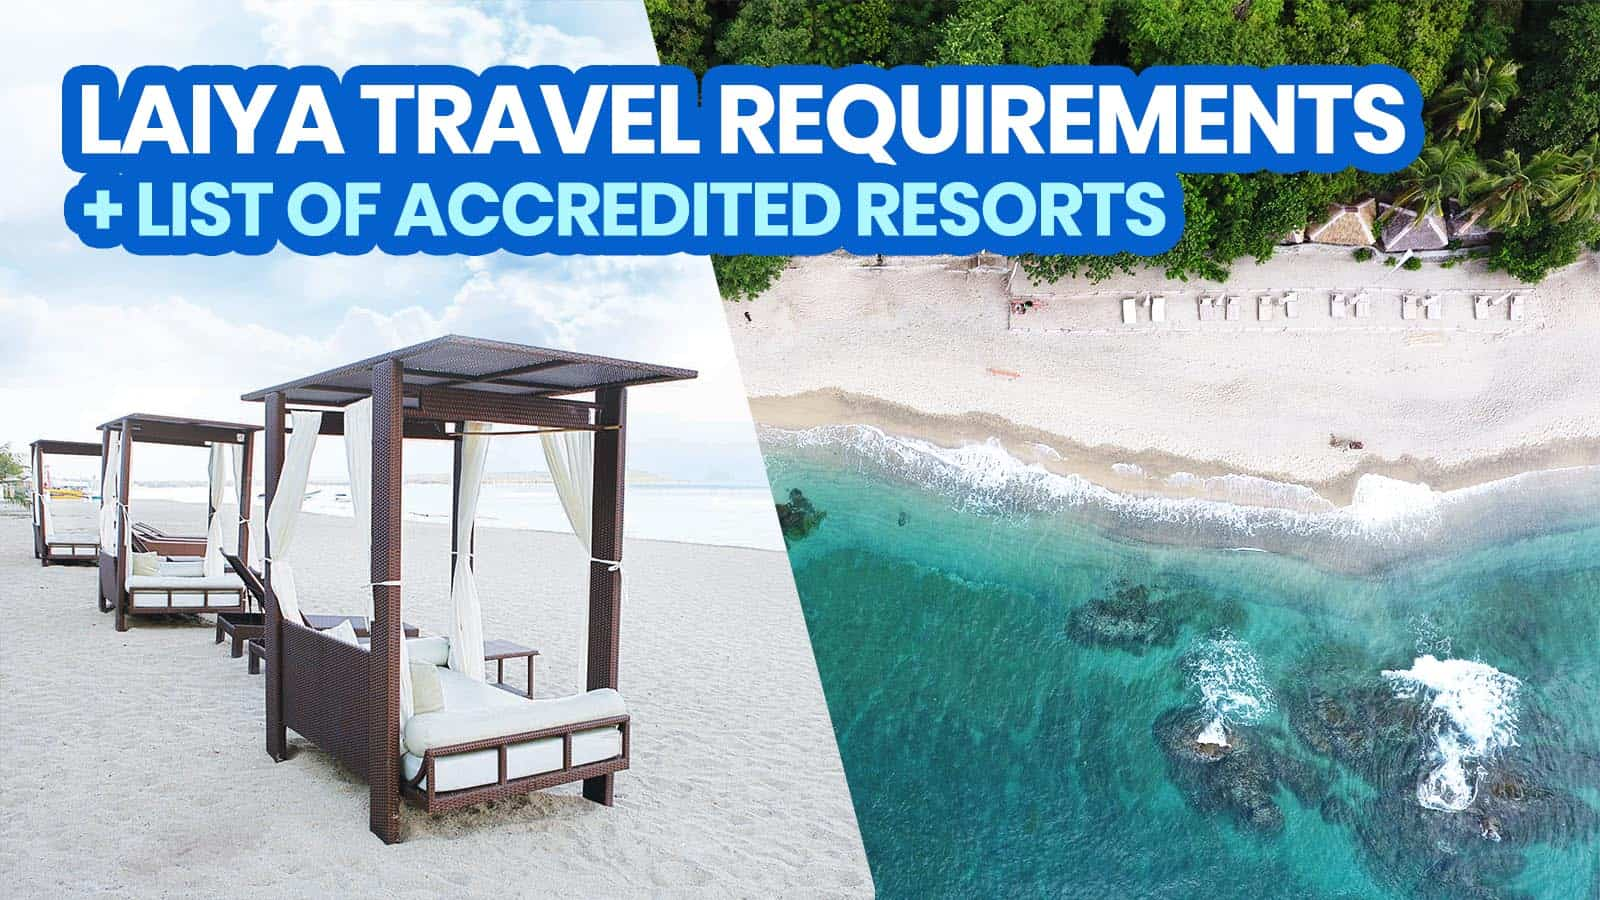 2021 LAIYA BEACH, BATANGAS: New Normal Travel Requirements + DOT-Accredited Resorts